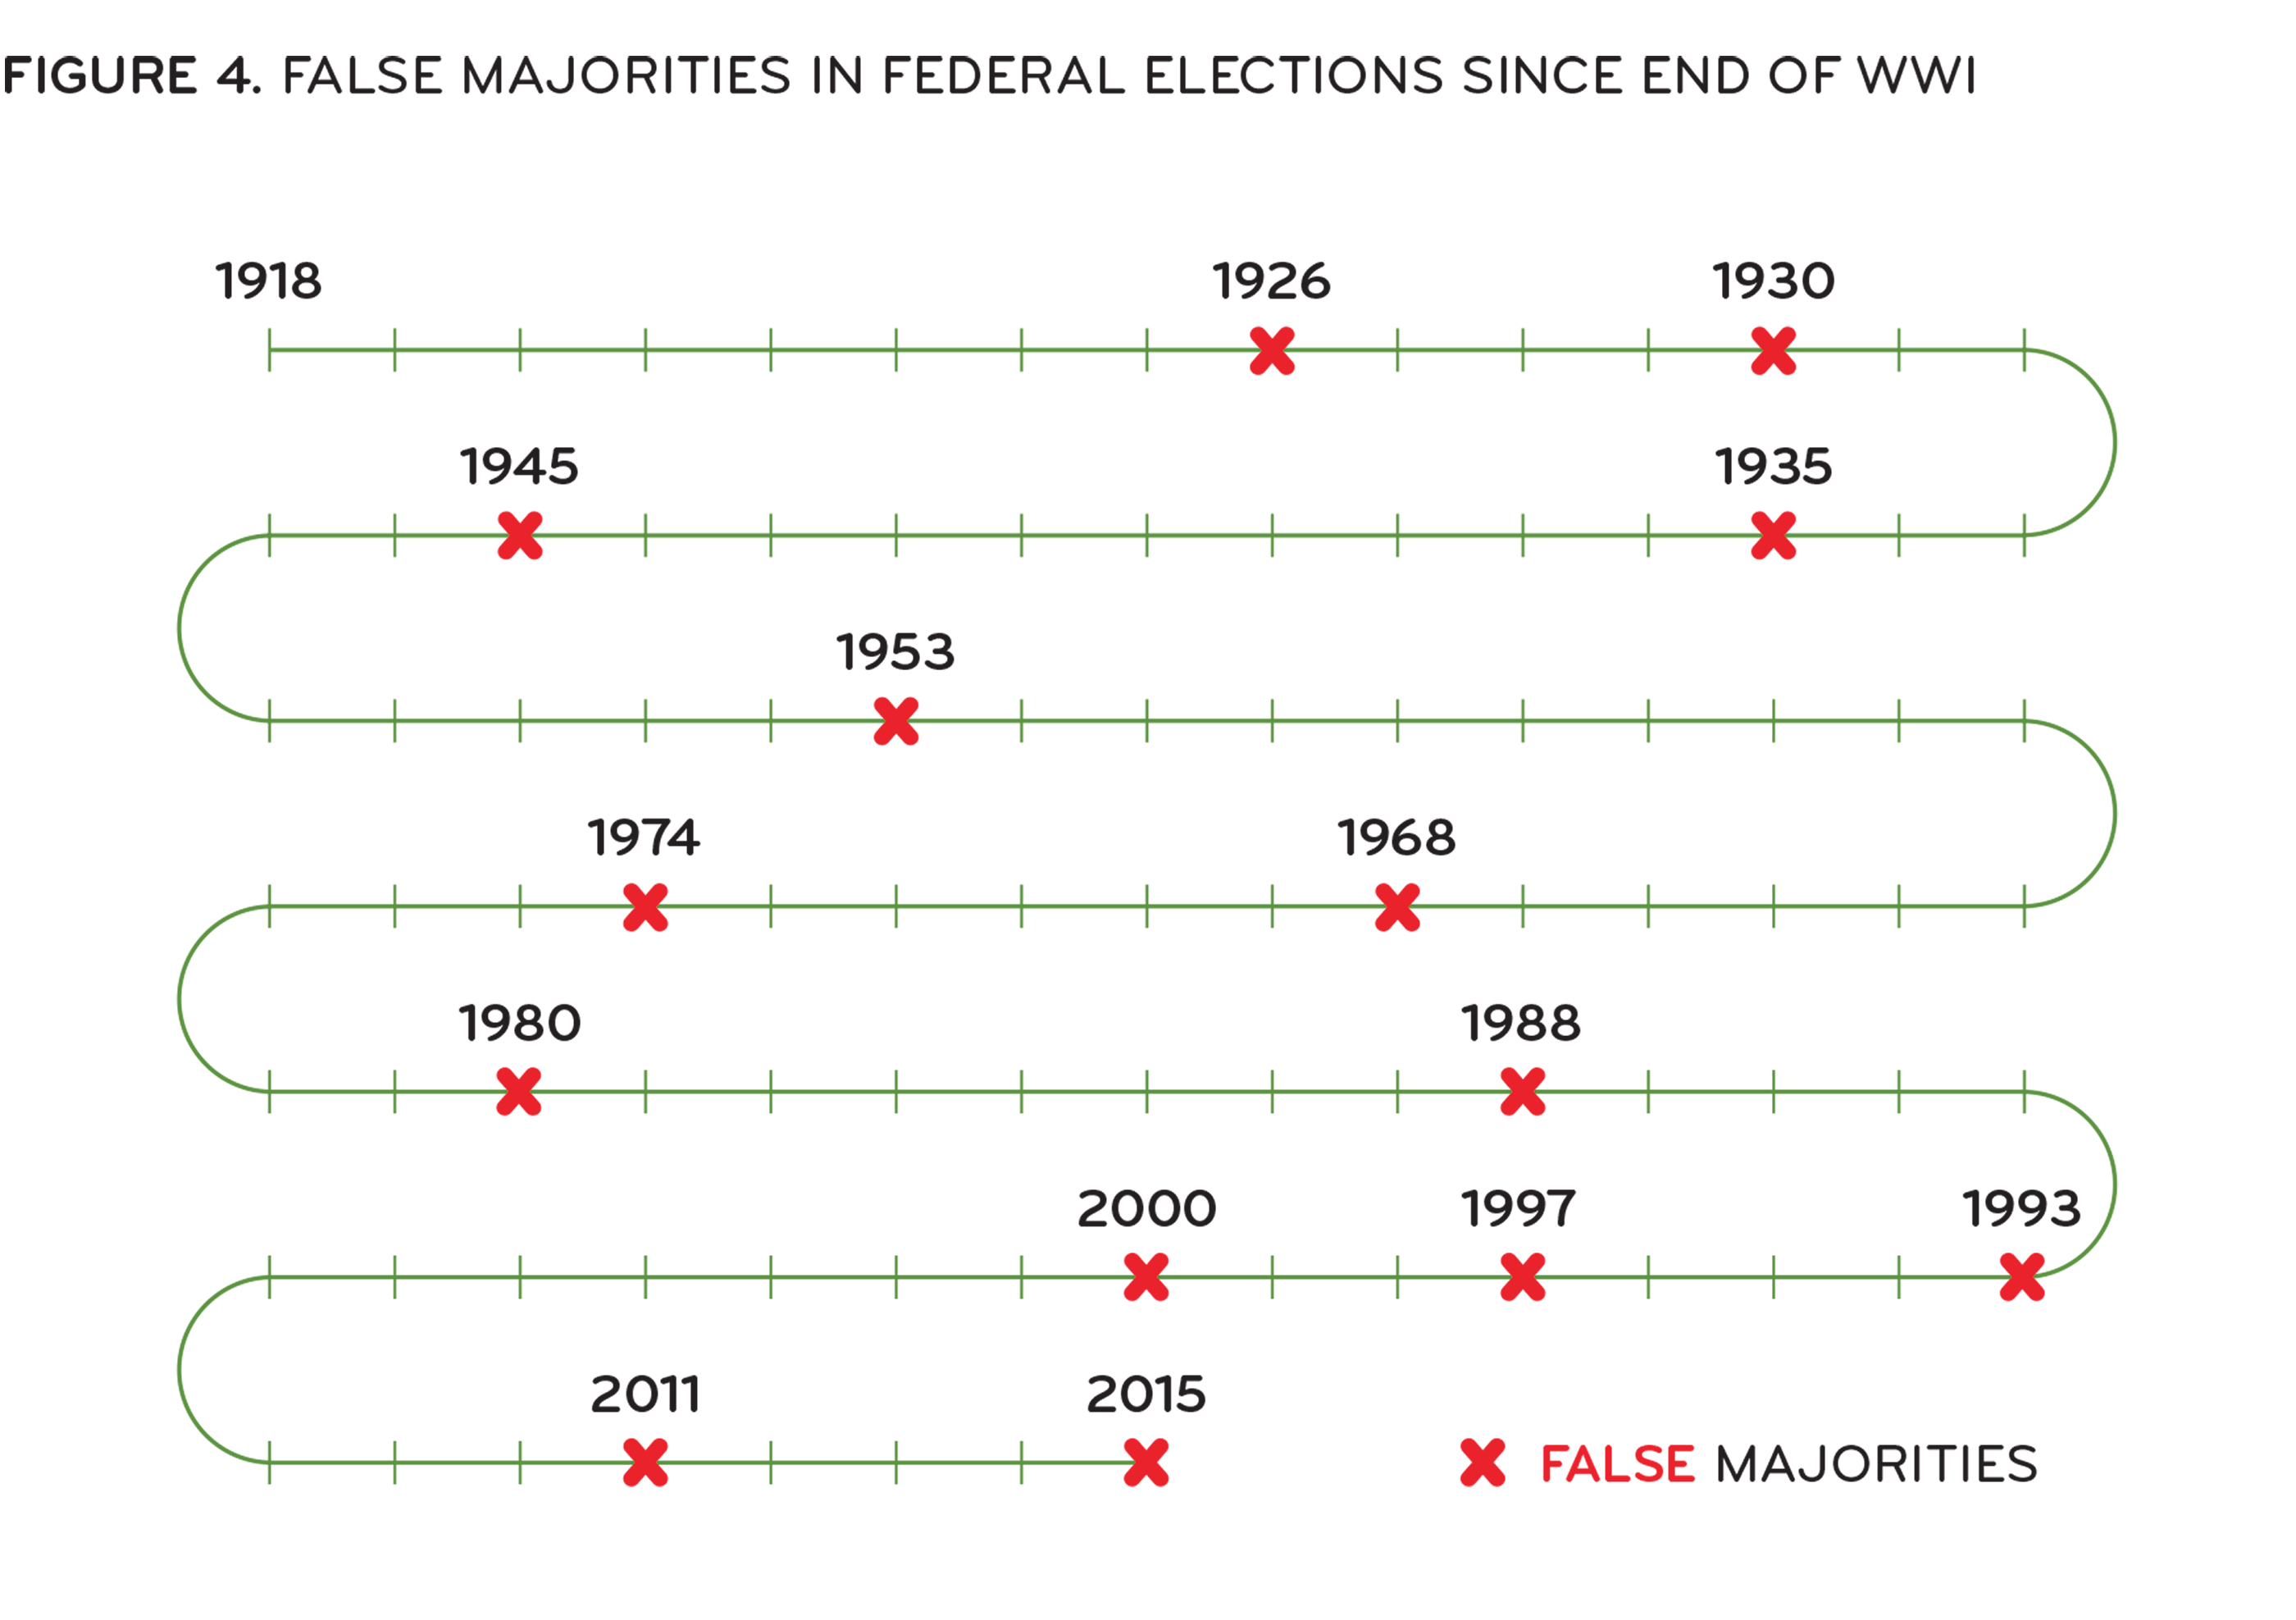 [ Figure 4: False majorities in federal elections; Years: 2015, 2011, 2000, 1997, 1993, 1988, 1980, 1974, 1968, 1957, 1945, 1935, 1930, 1926, 1896, 1872 ]